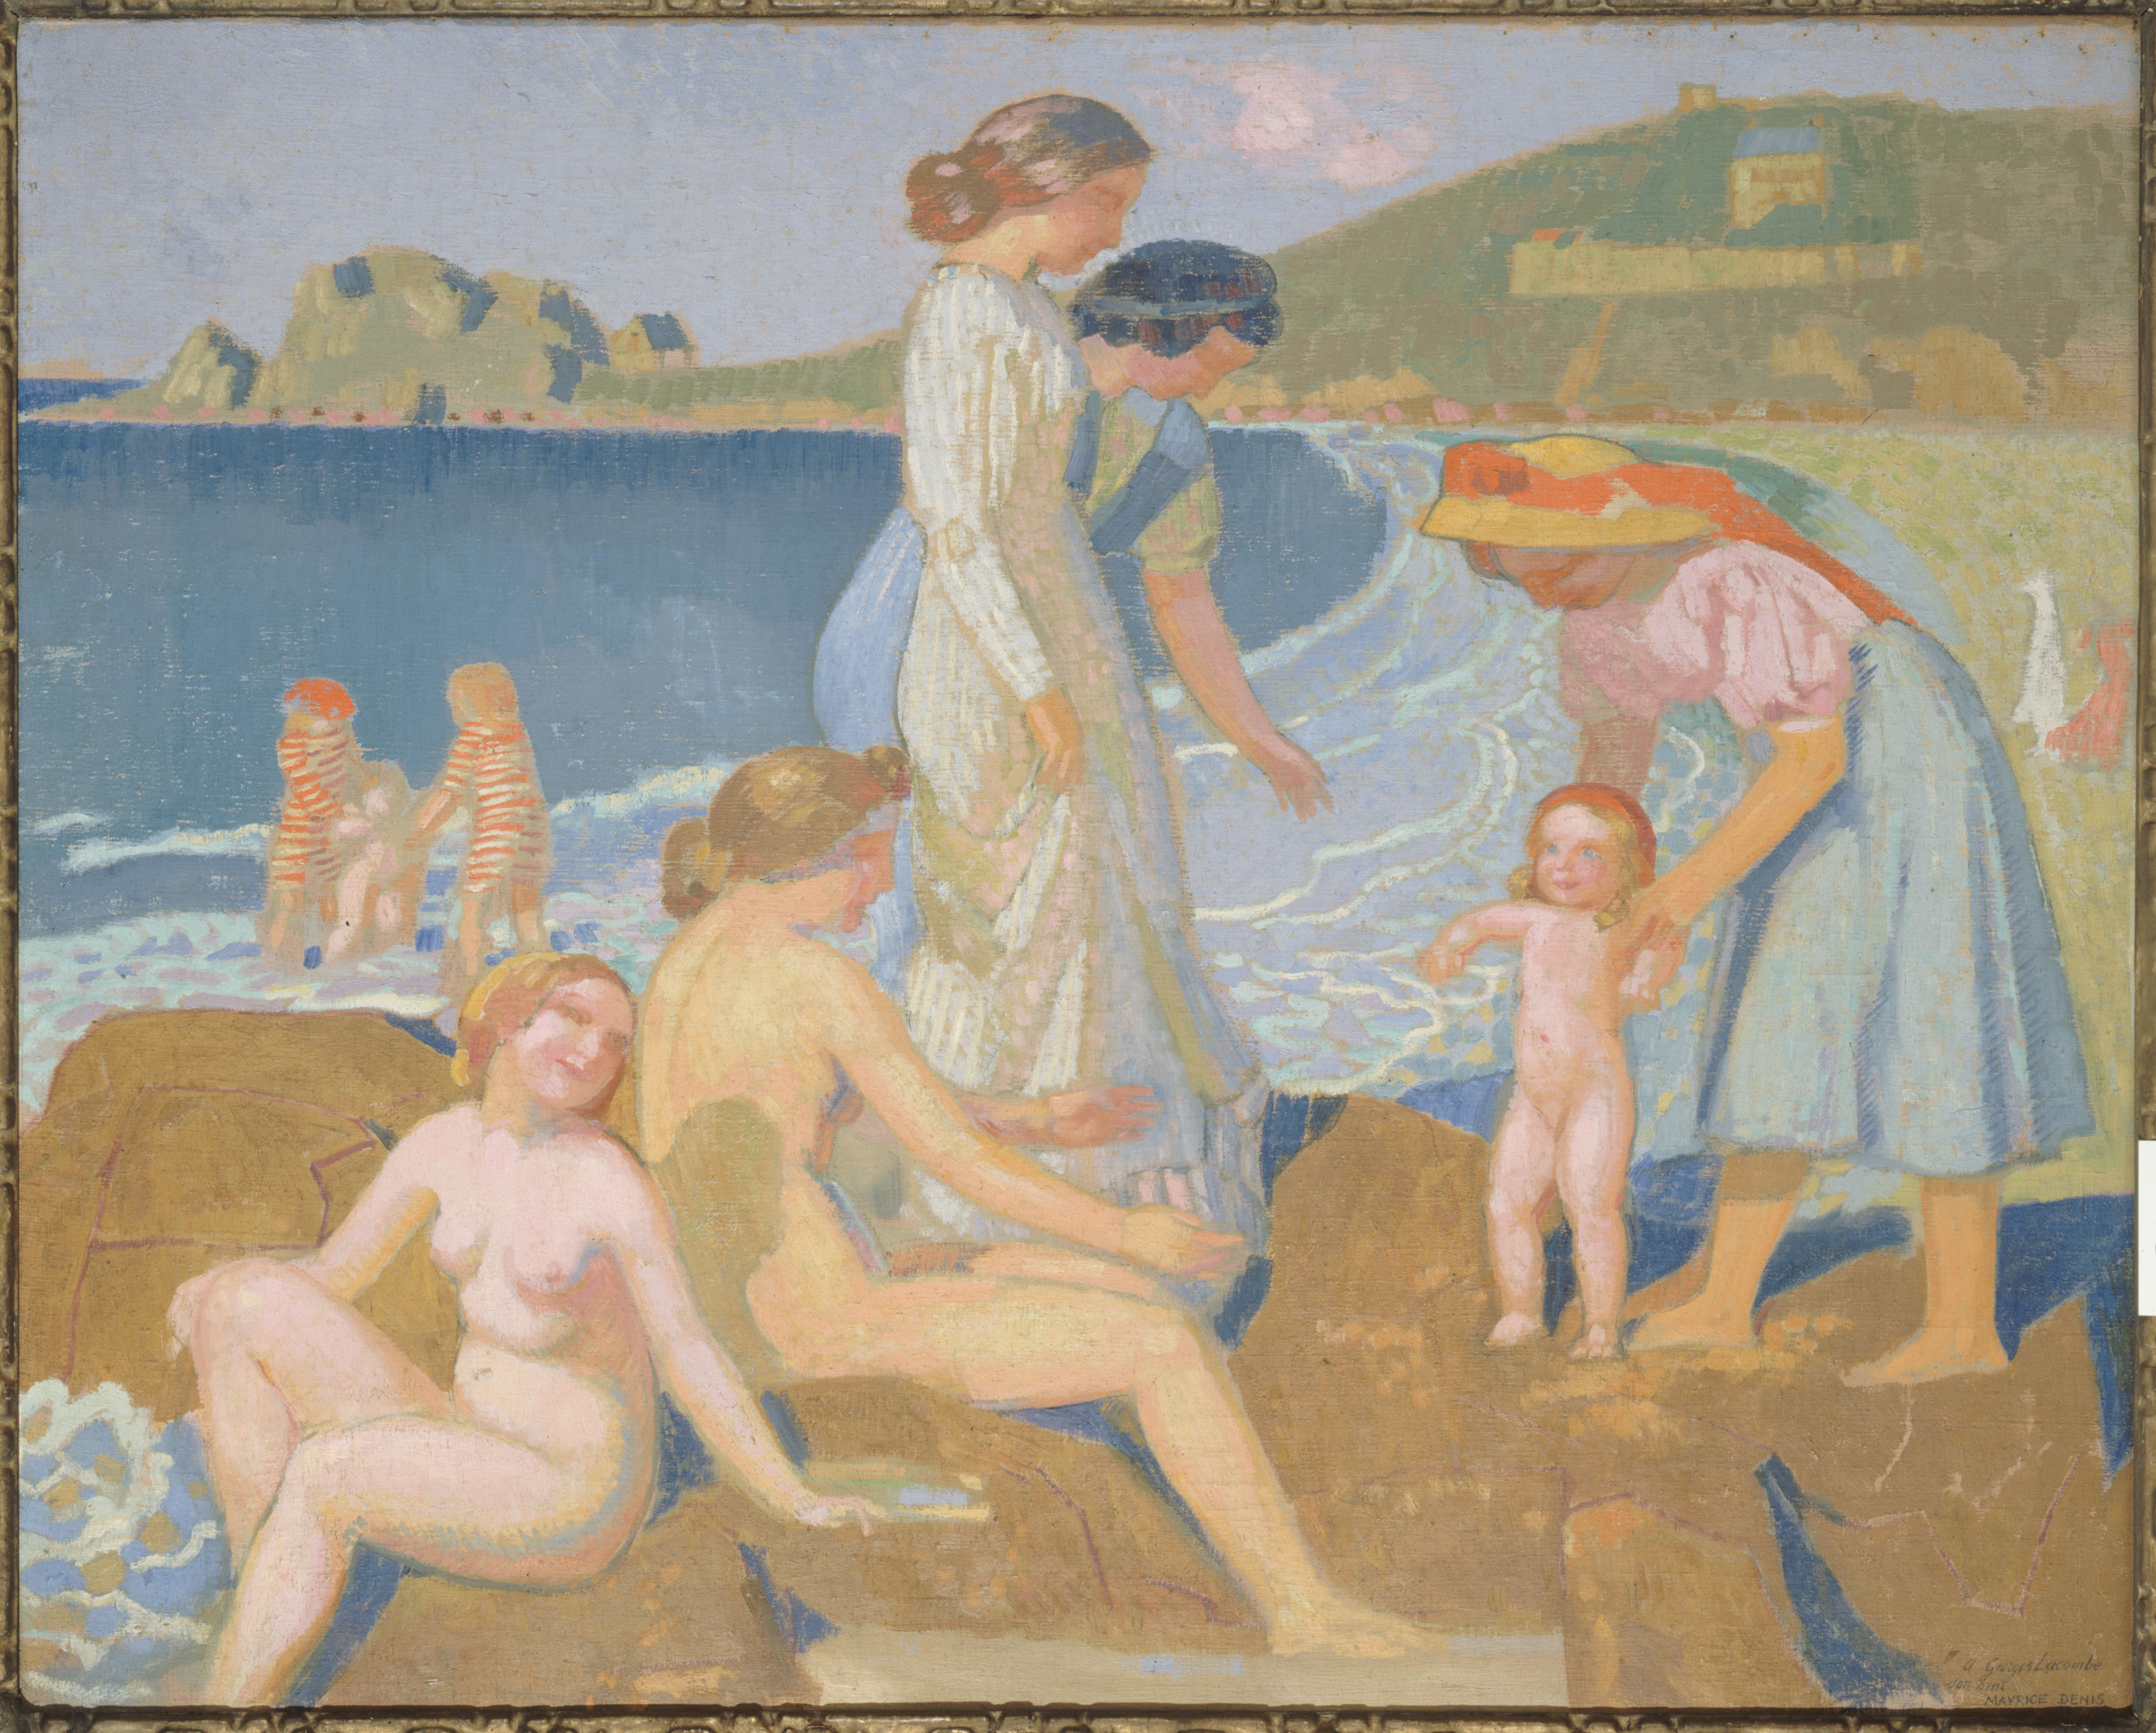 Maurice Denis - Female bathers at Perros-Guirec